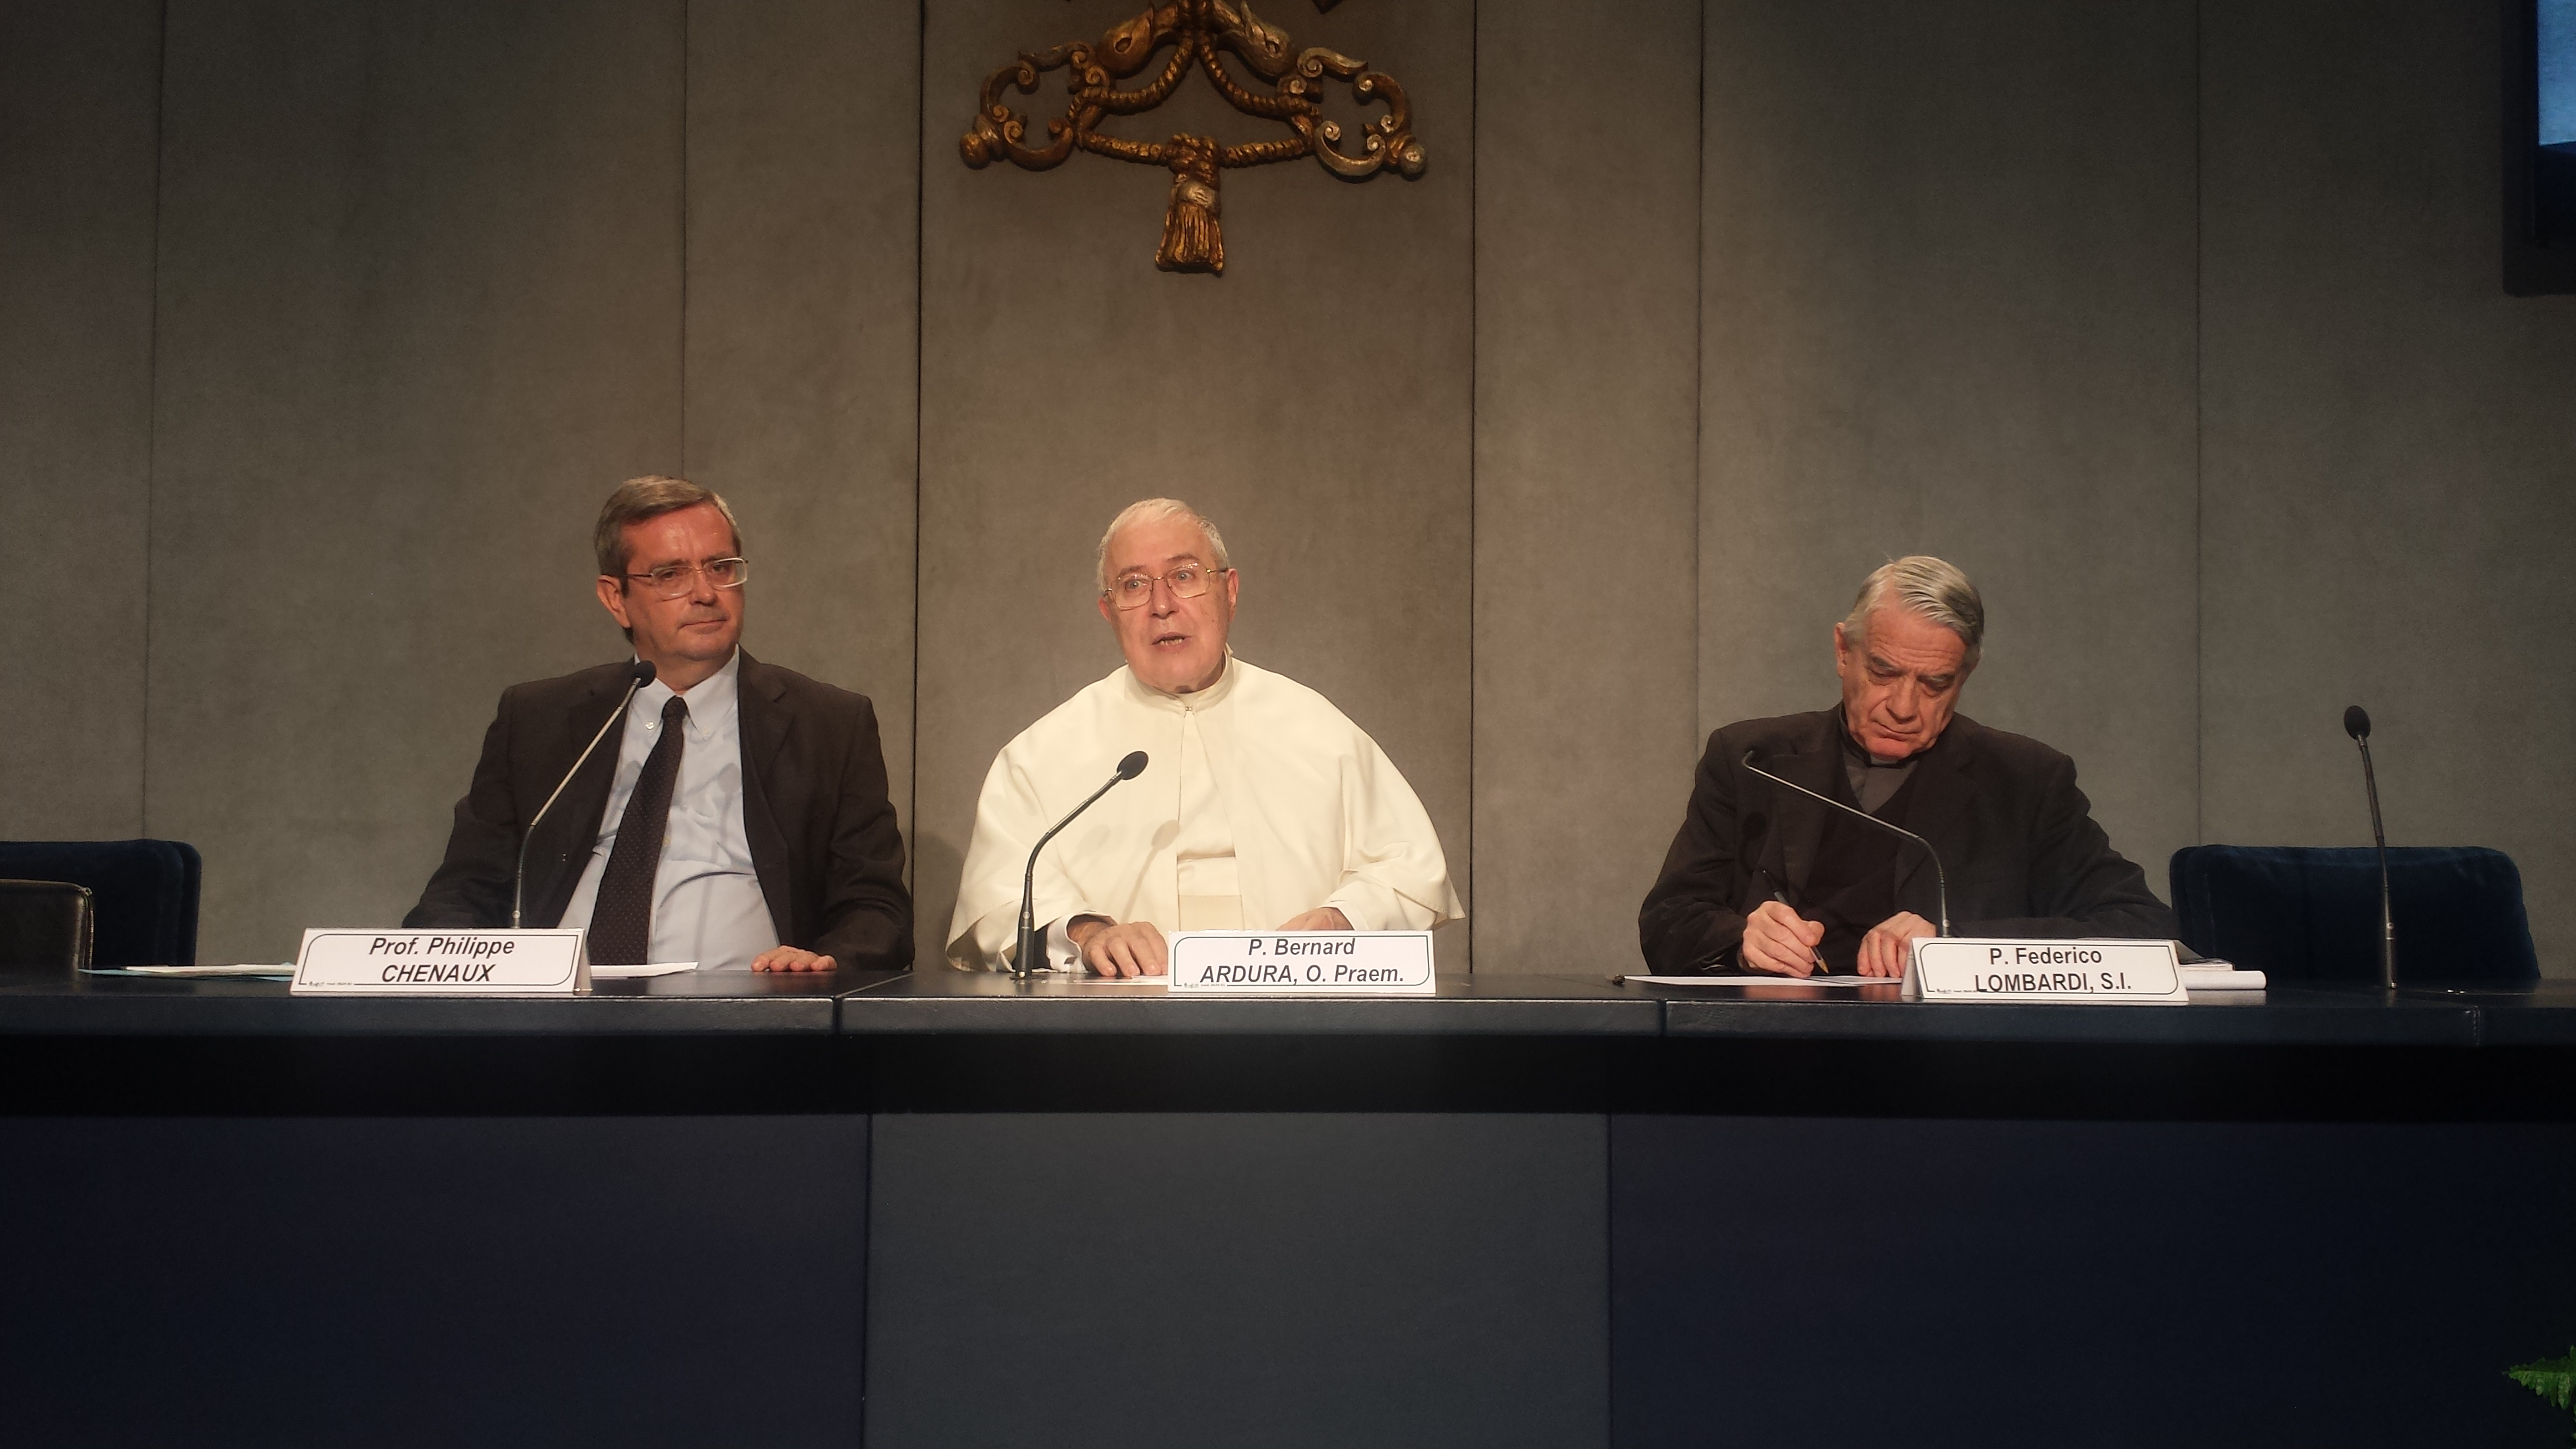 Press conference about Vatican II congress